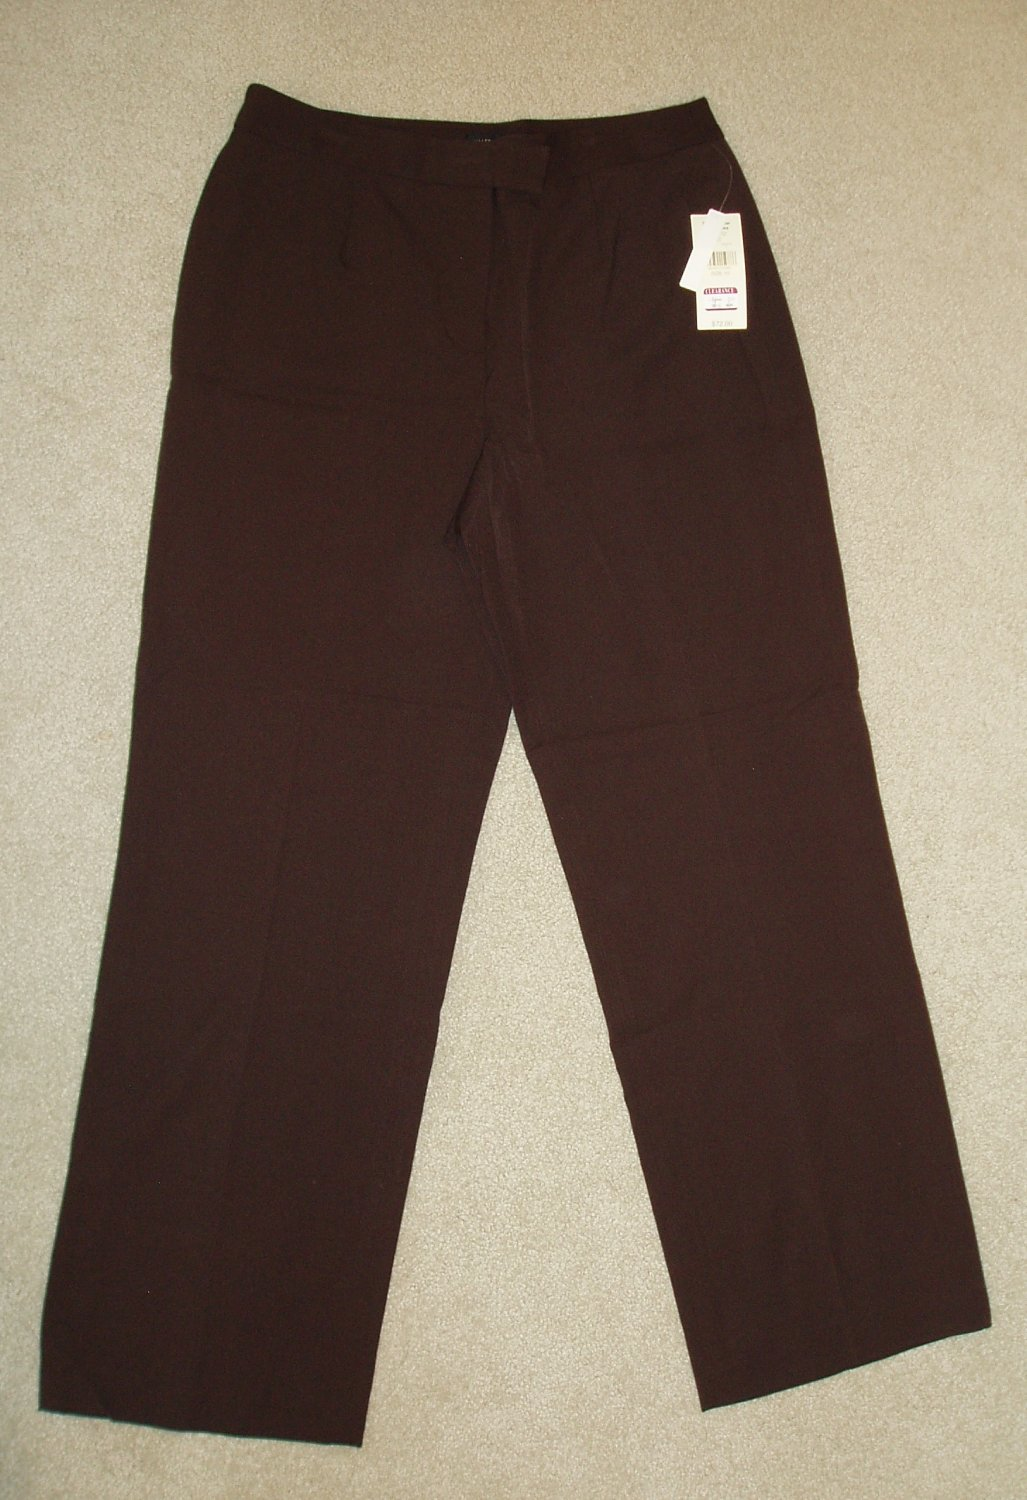 Valerie Stevens women's Brown Dress Pants, size 10